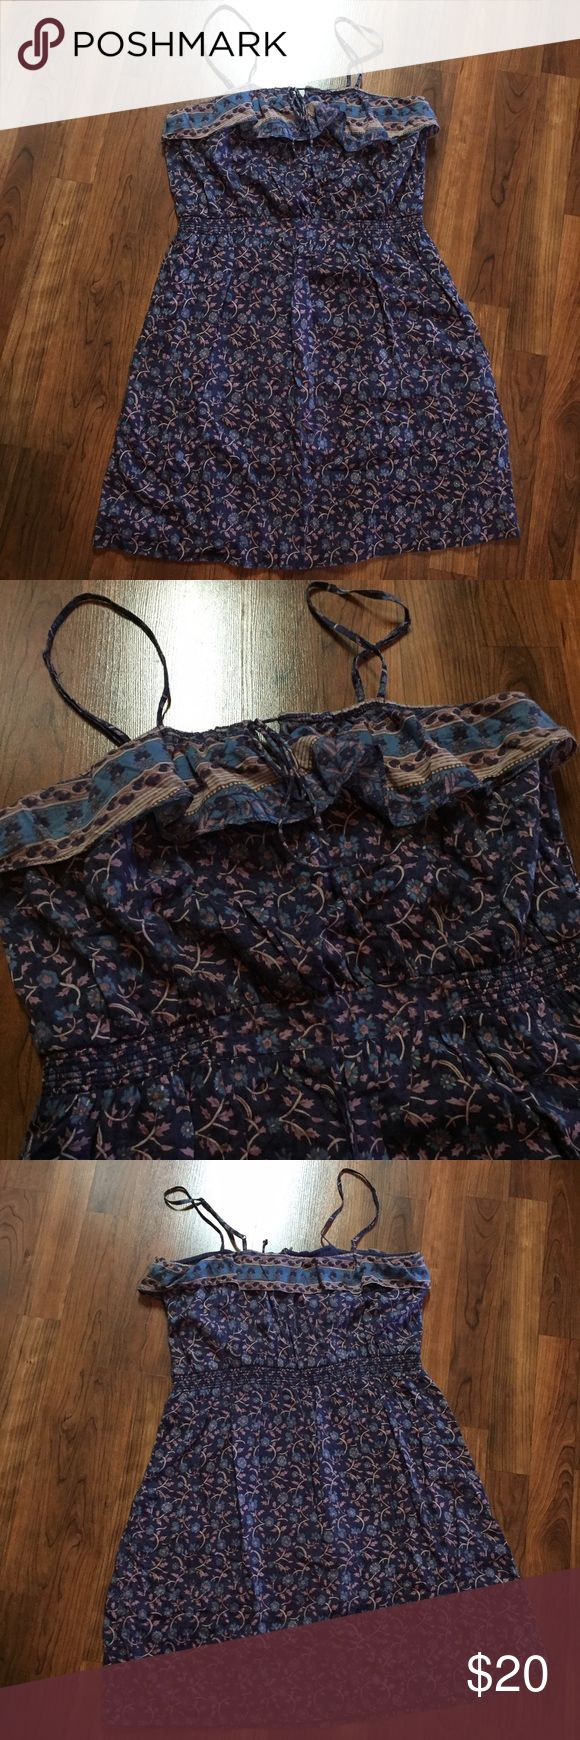 Floral Purple Ruffle Dress Excellent Used Condition - slightly elastic cinched waist with ruffles on top.  Light weight with a Keyhole tie.  Also has a built in bra.  This is beautiful & could look amazing with cowboy boots.  Top can even be worn with straps tucked in for a strapless look.  Color is most accurate in 1st photo. American Eagle Outfitters Dresses